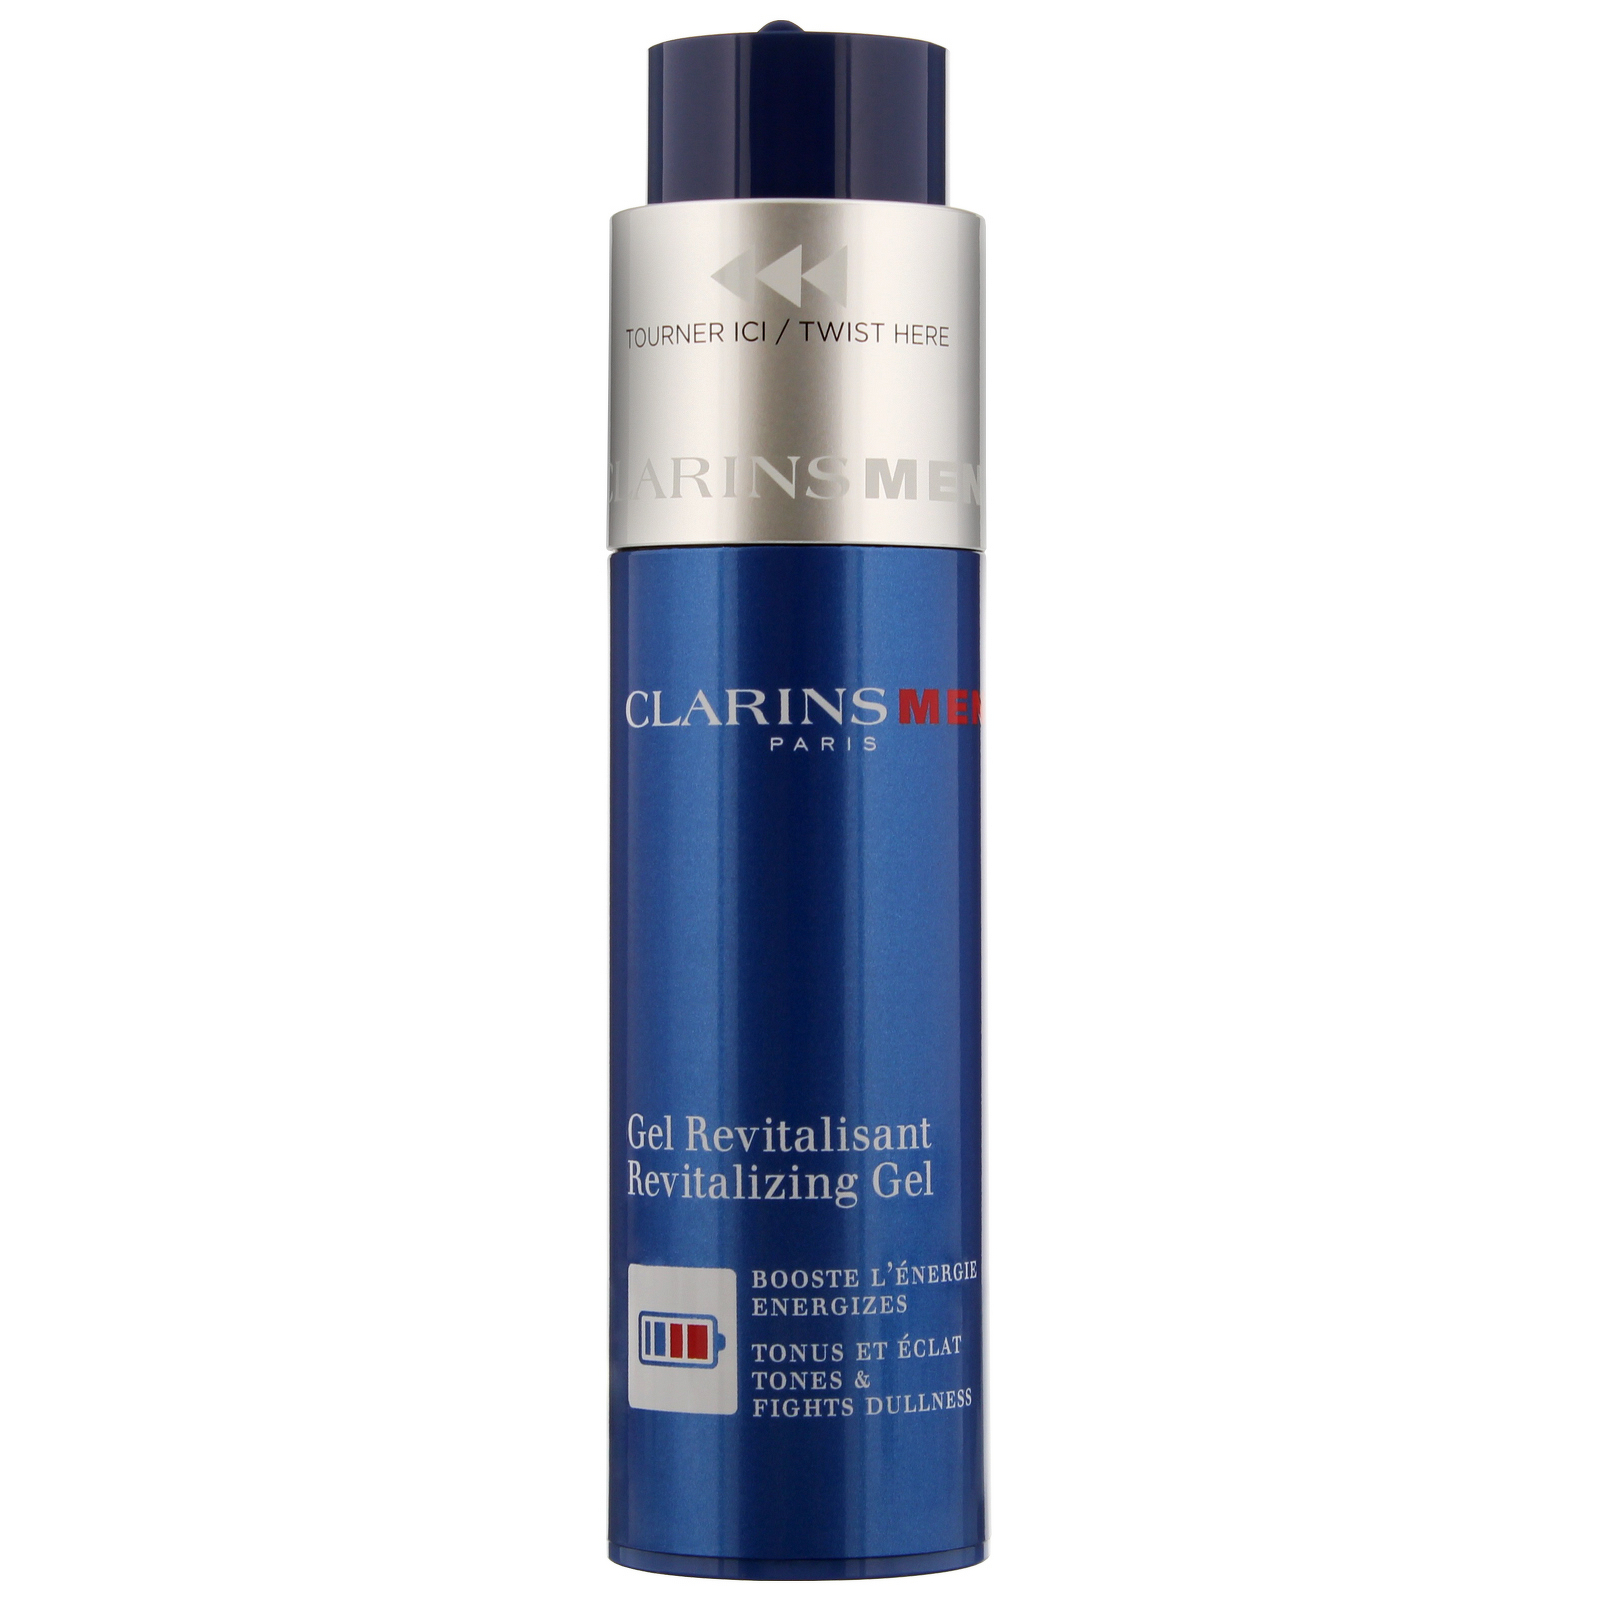 Clarins Men Revitalizing Gel 50ml / 1.7 oz.